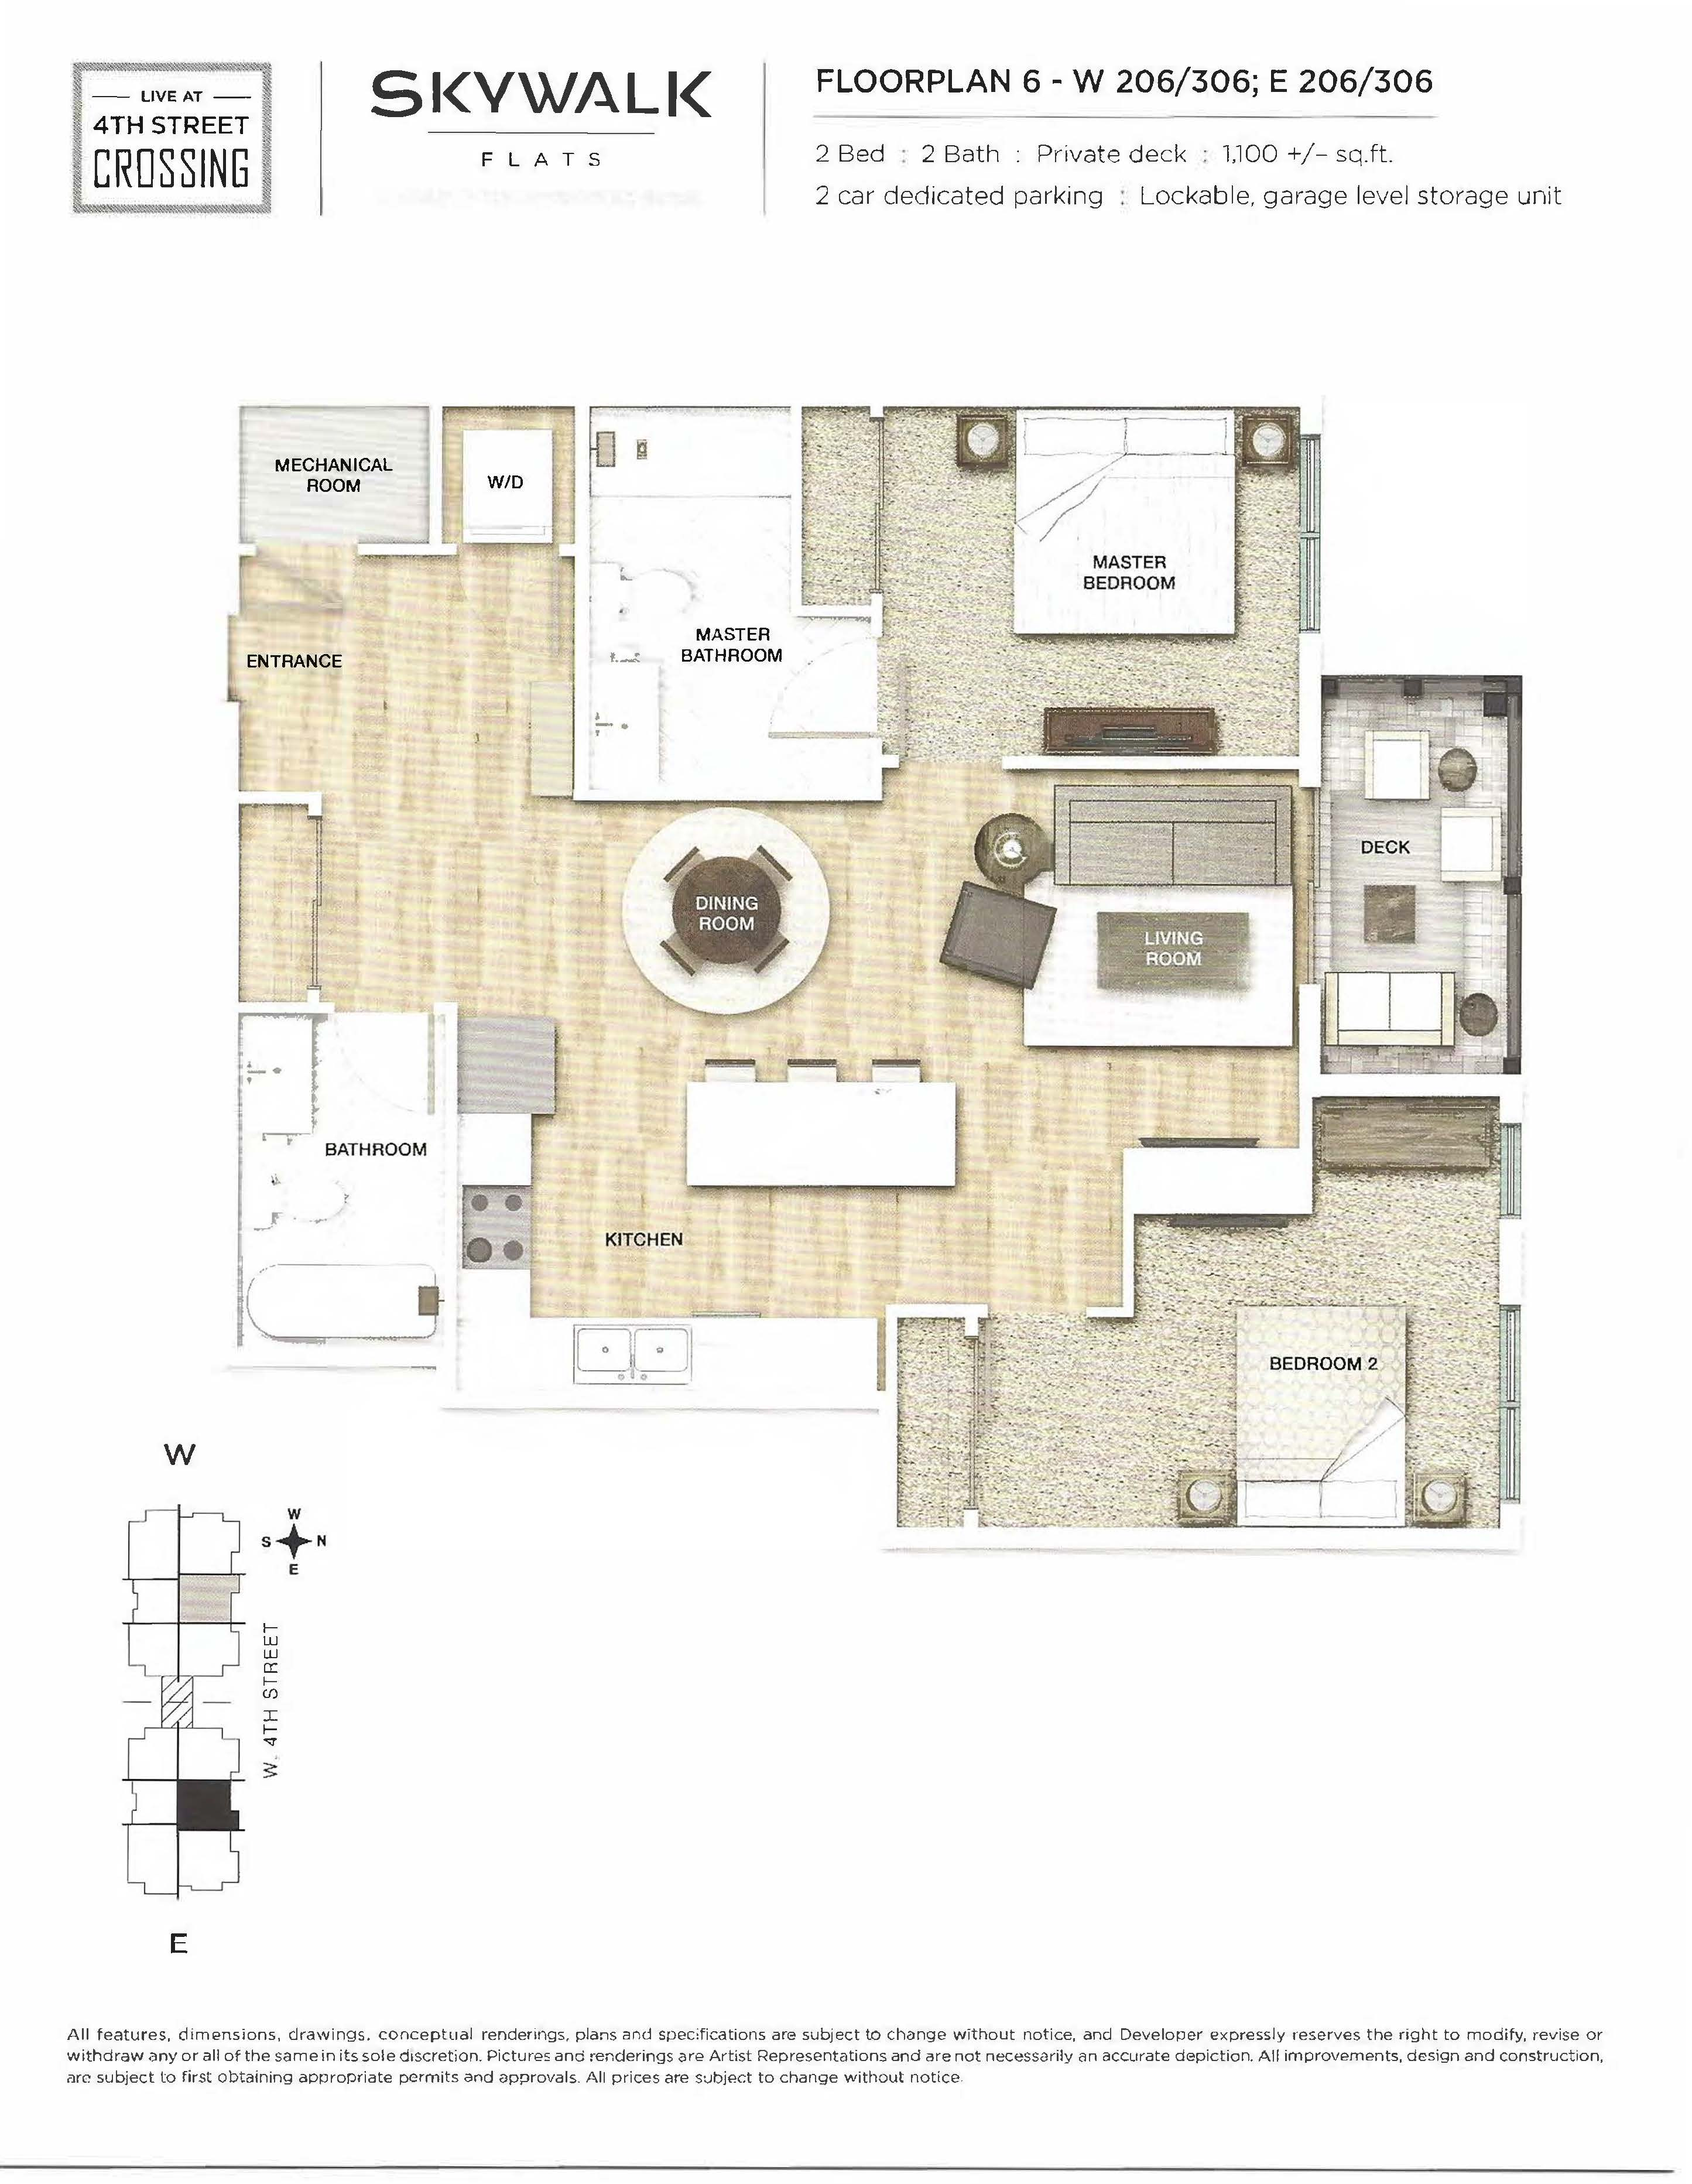 Fourth Street Crossing - Skywalk Flats - Floorplan 6